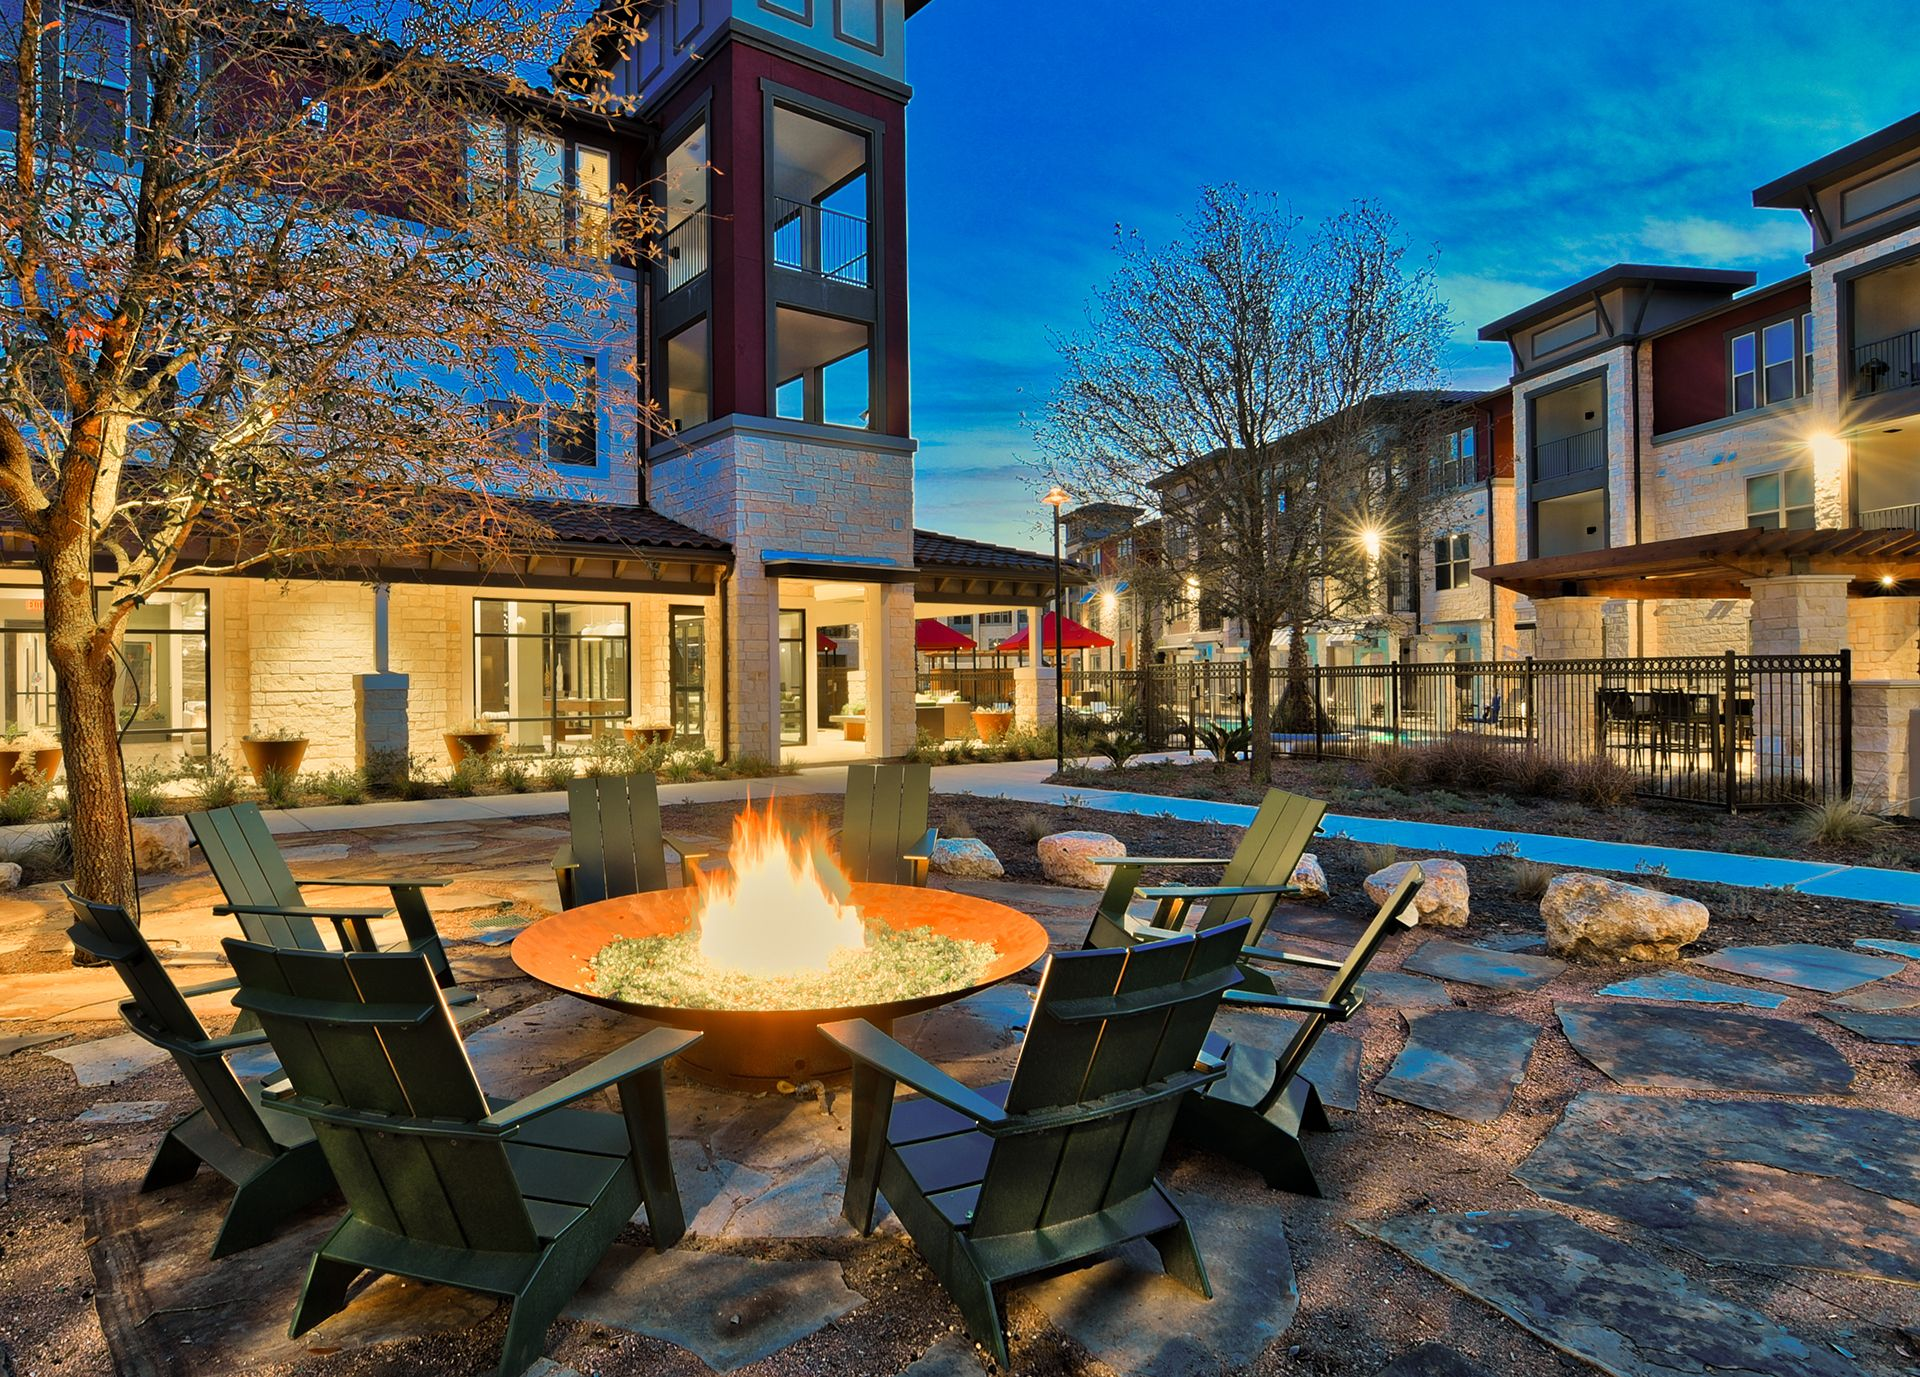 outdoor fire pit with seating and view of pool